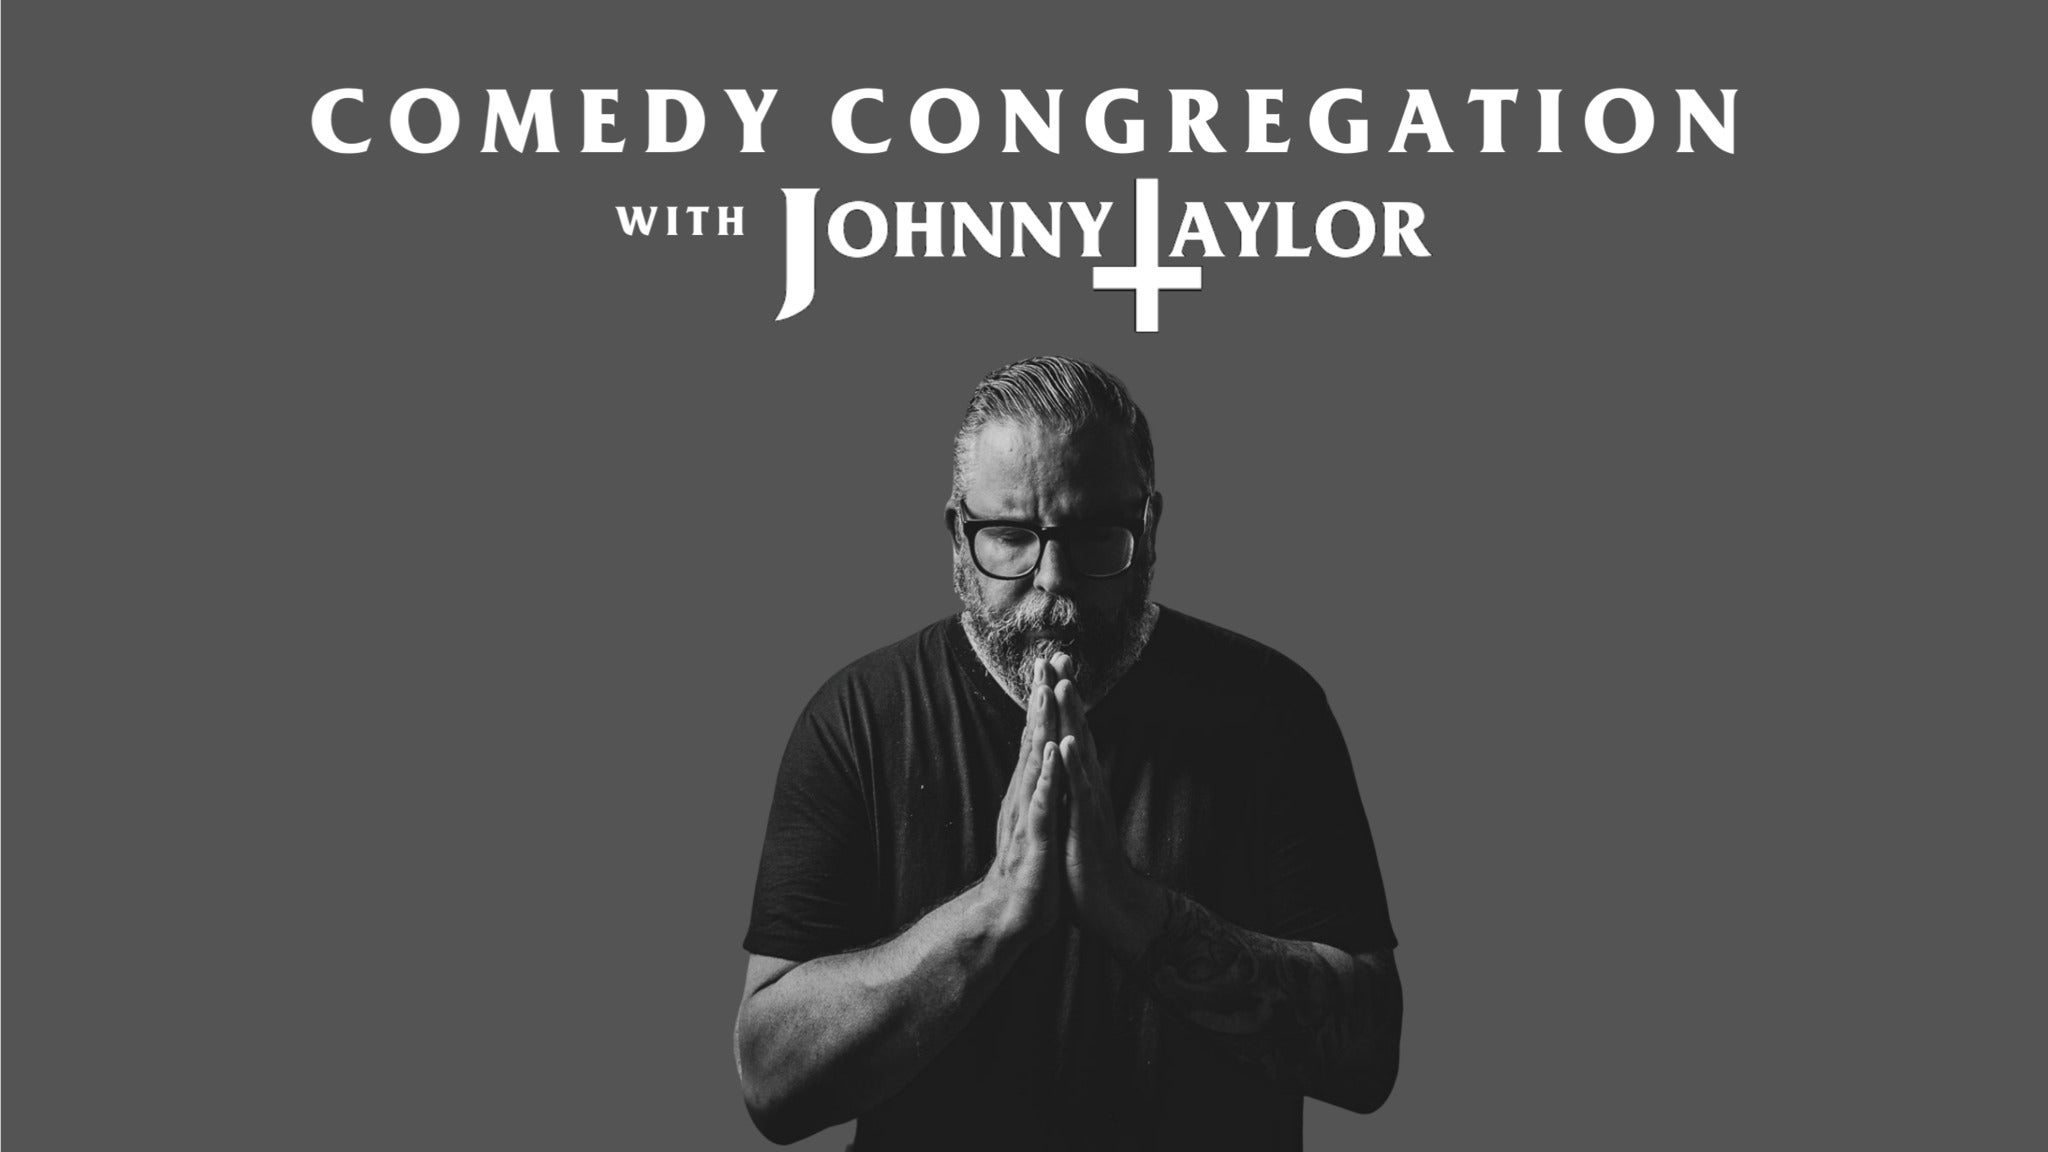 Comedy Congregation with Johnny Taylor